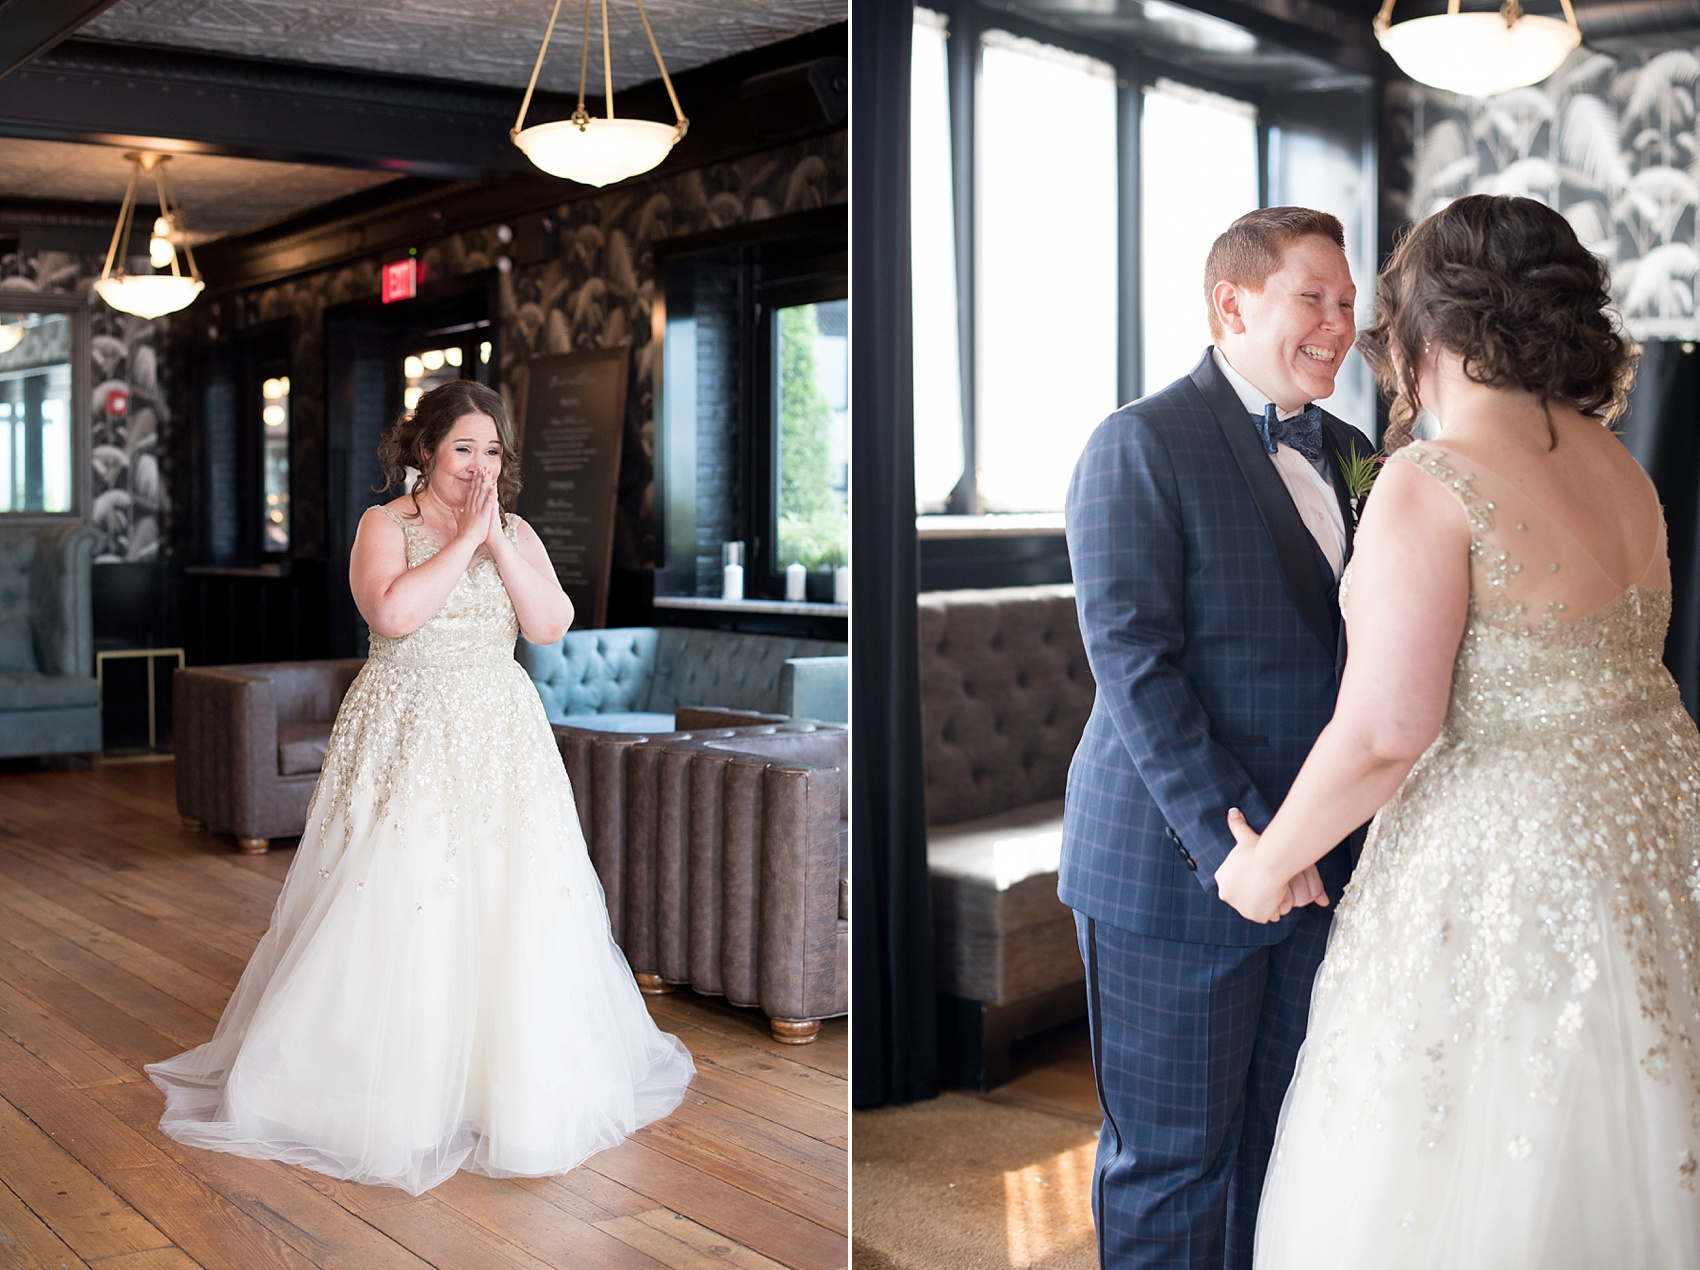 First look for a 501 Union lesbian wedding. Photos by Mikkel Paige Photography, in Brooklyn, NYC. Planning by Ashley M Chamblin Events.